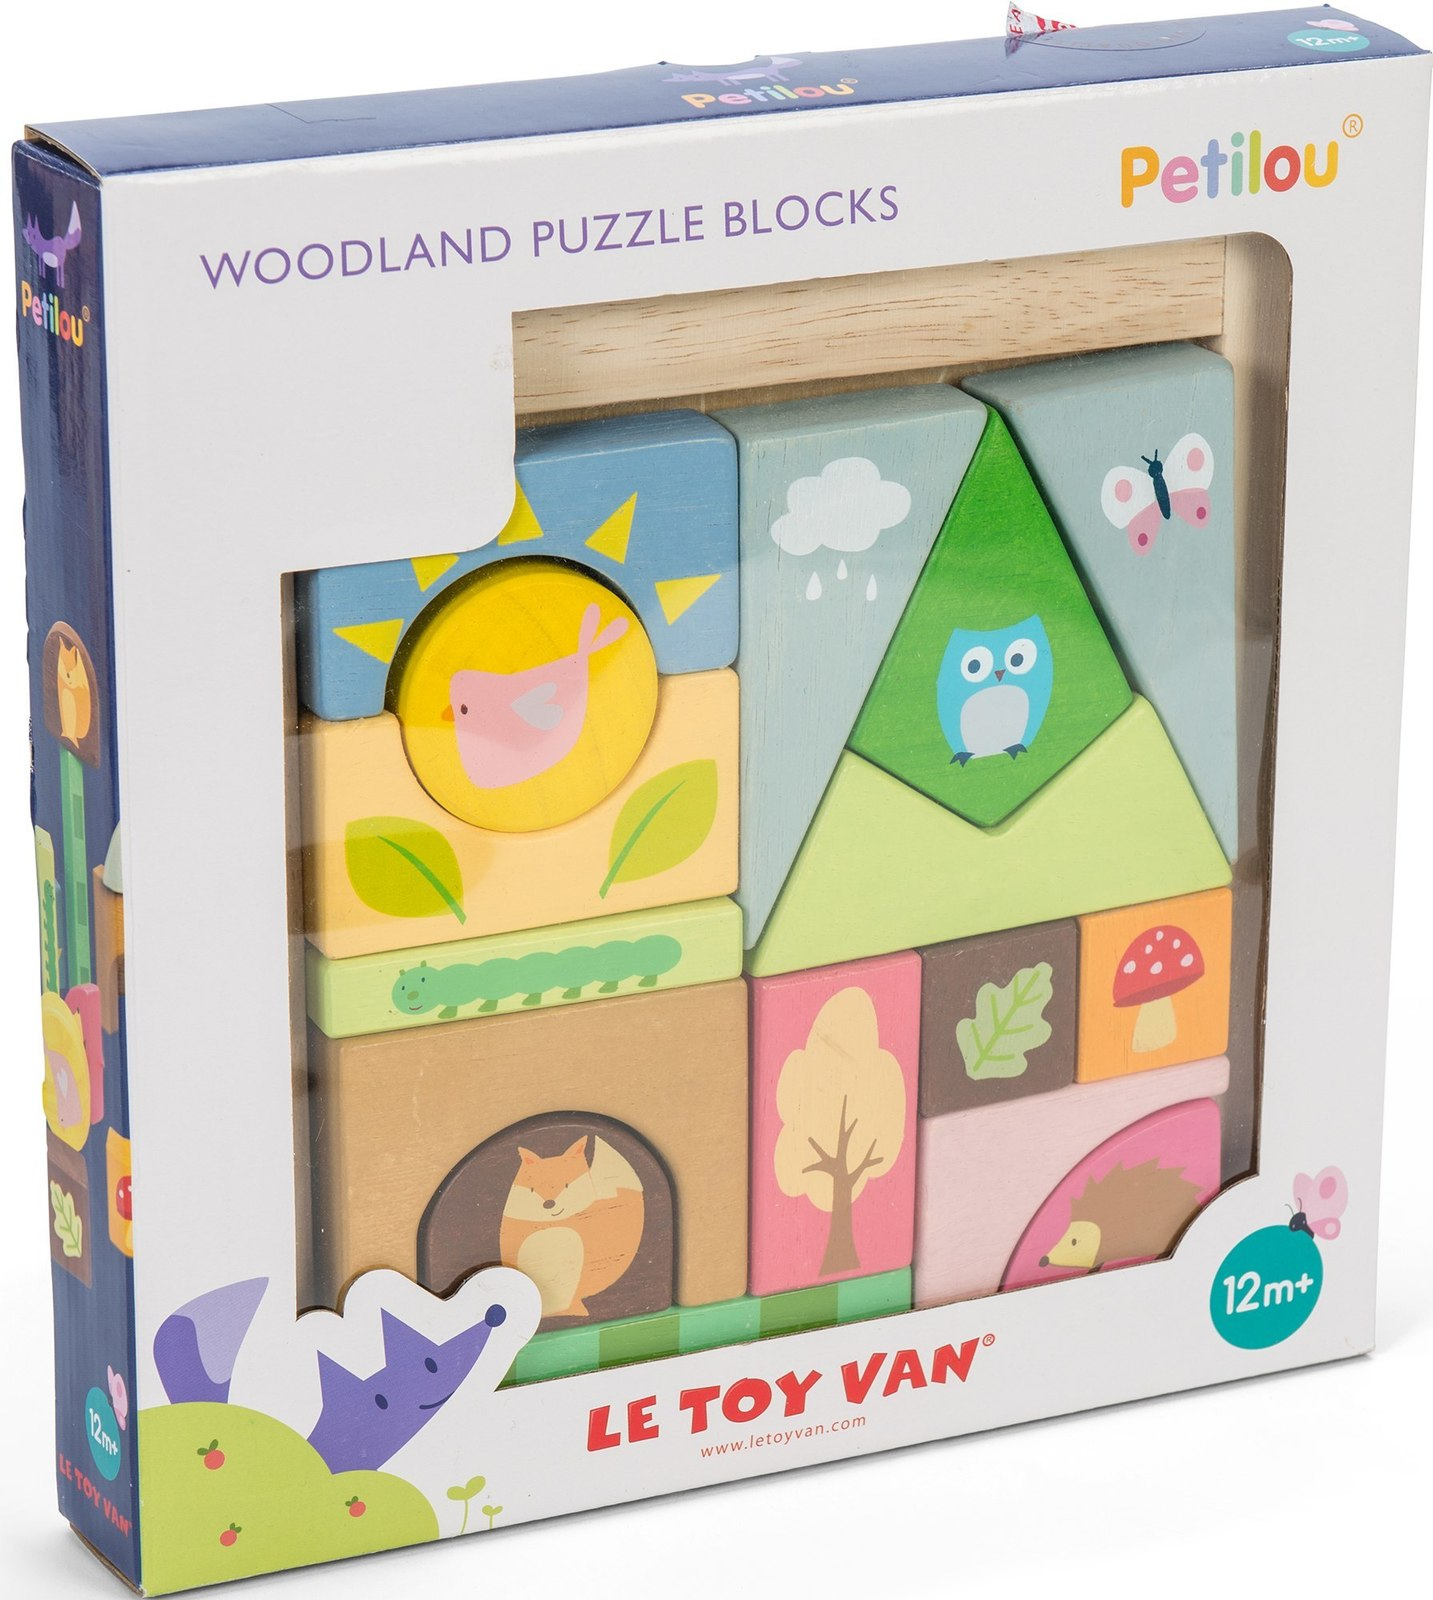 Le Toy Van: Petilou - Woodland Puzzle Blocks image